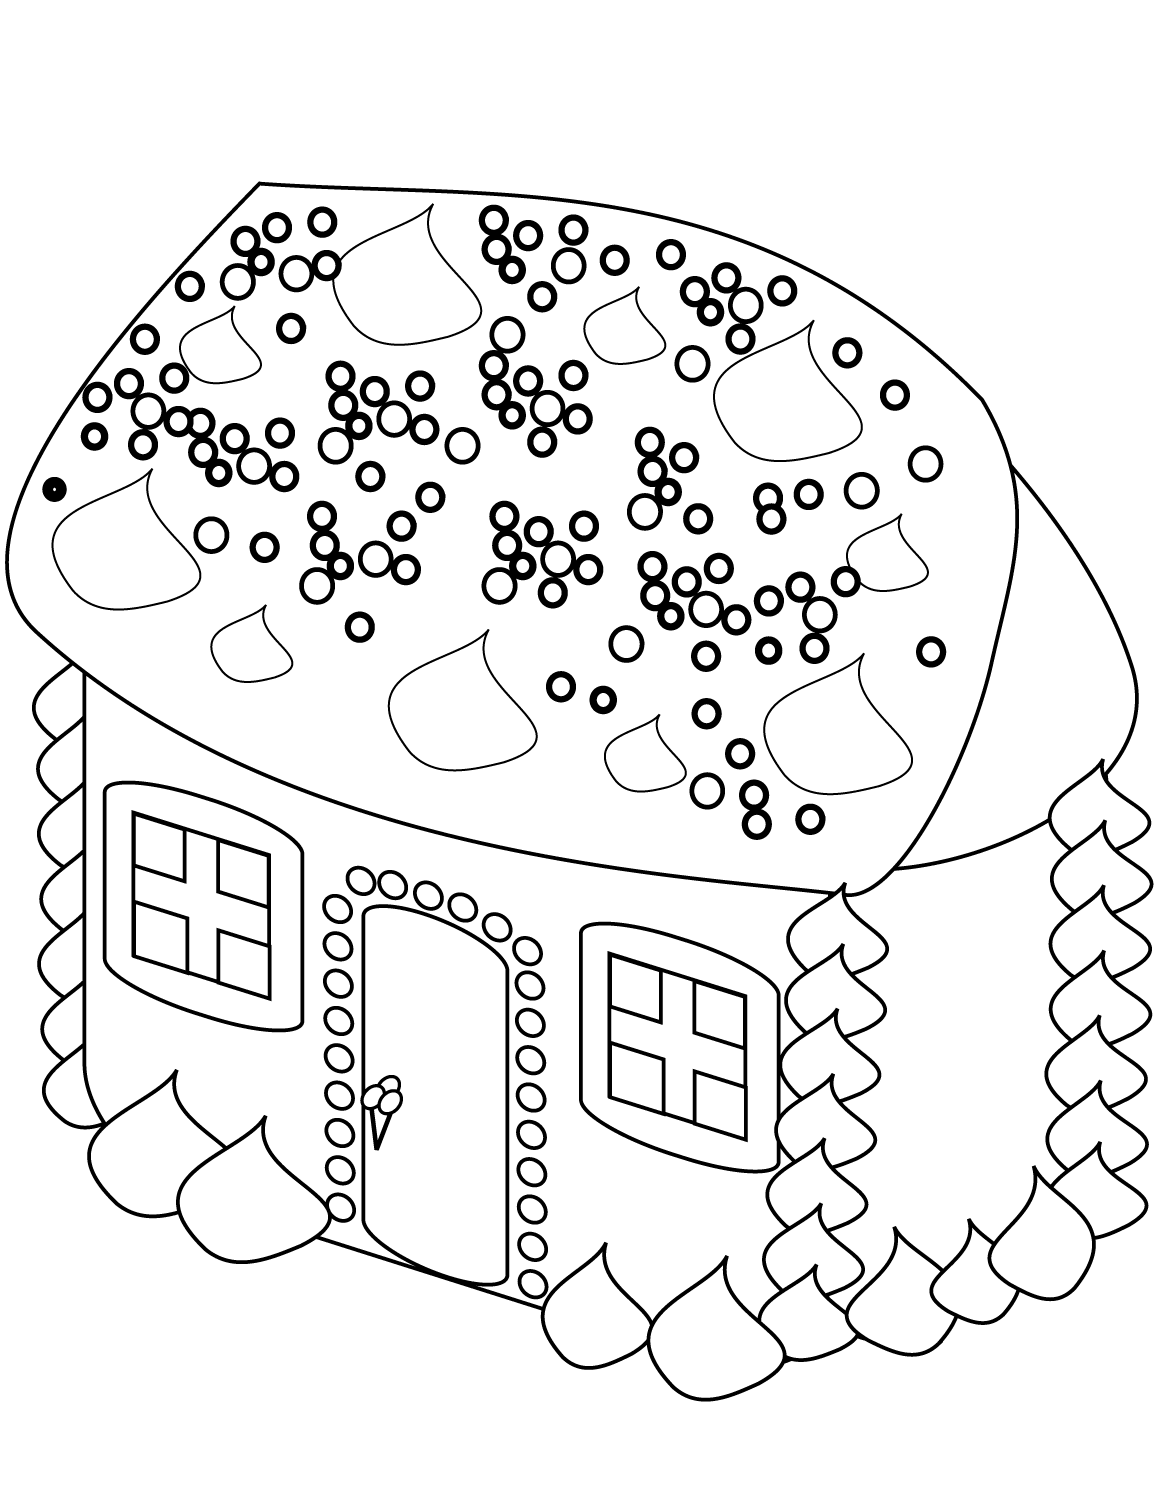 gingerbread house colouring pages 30 free gingerbread house coloring pages printable pages house colouring gingerbread